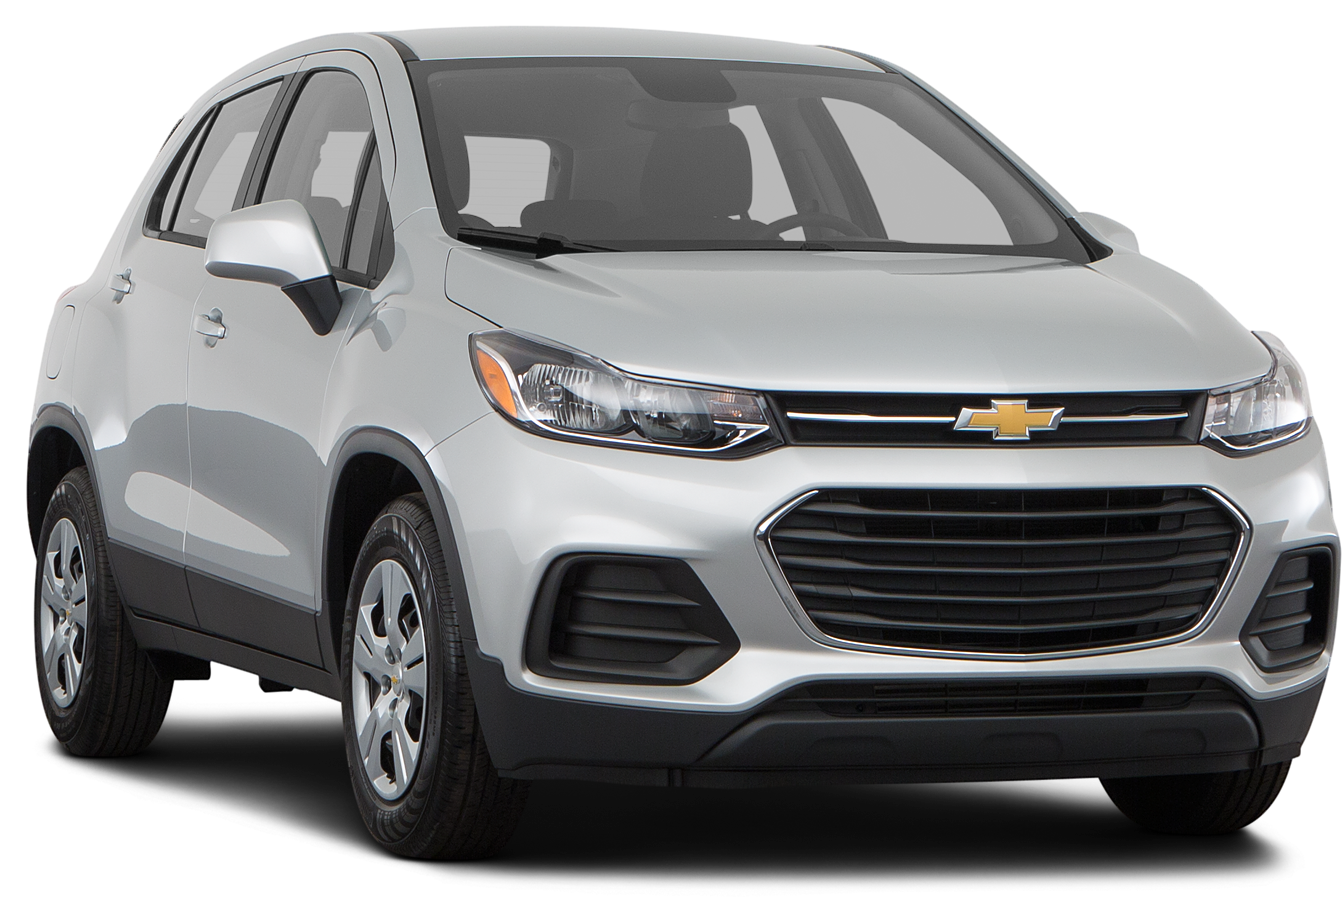 2019 Chevrolet Trax Incentives, Specials & Offers in ...